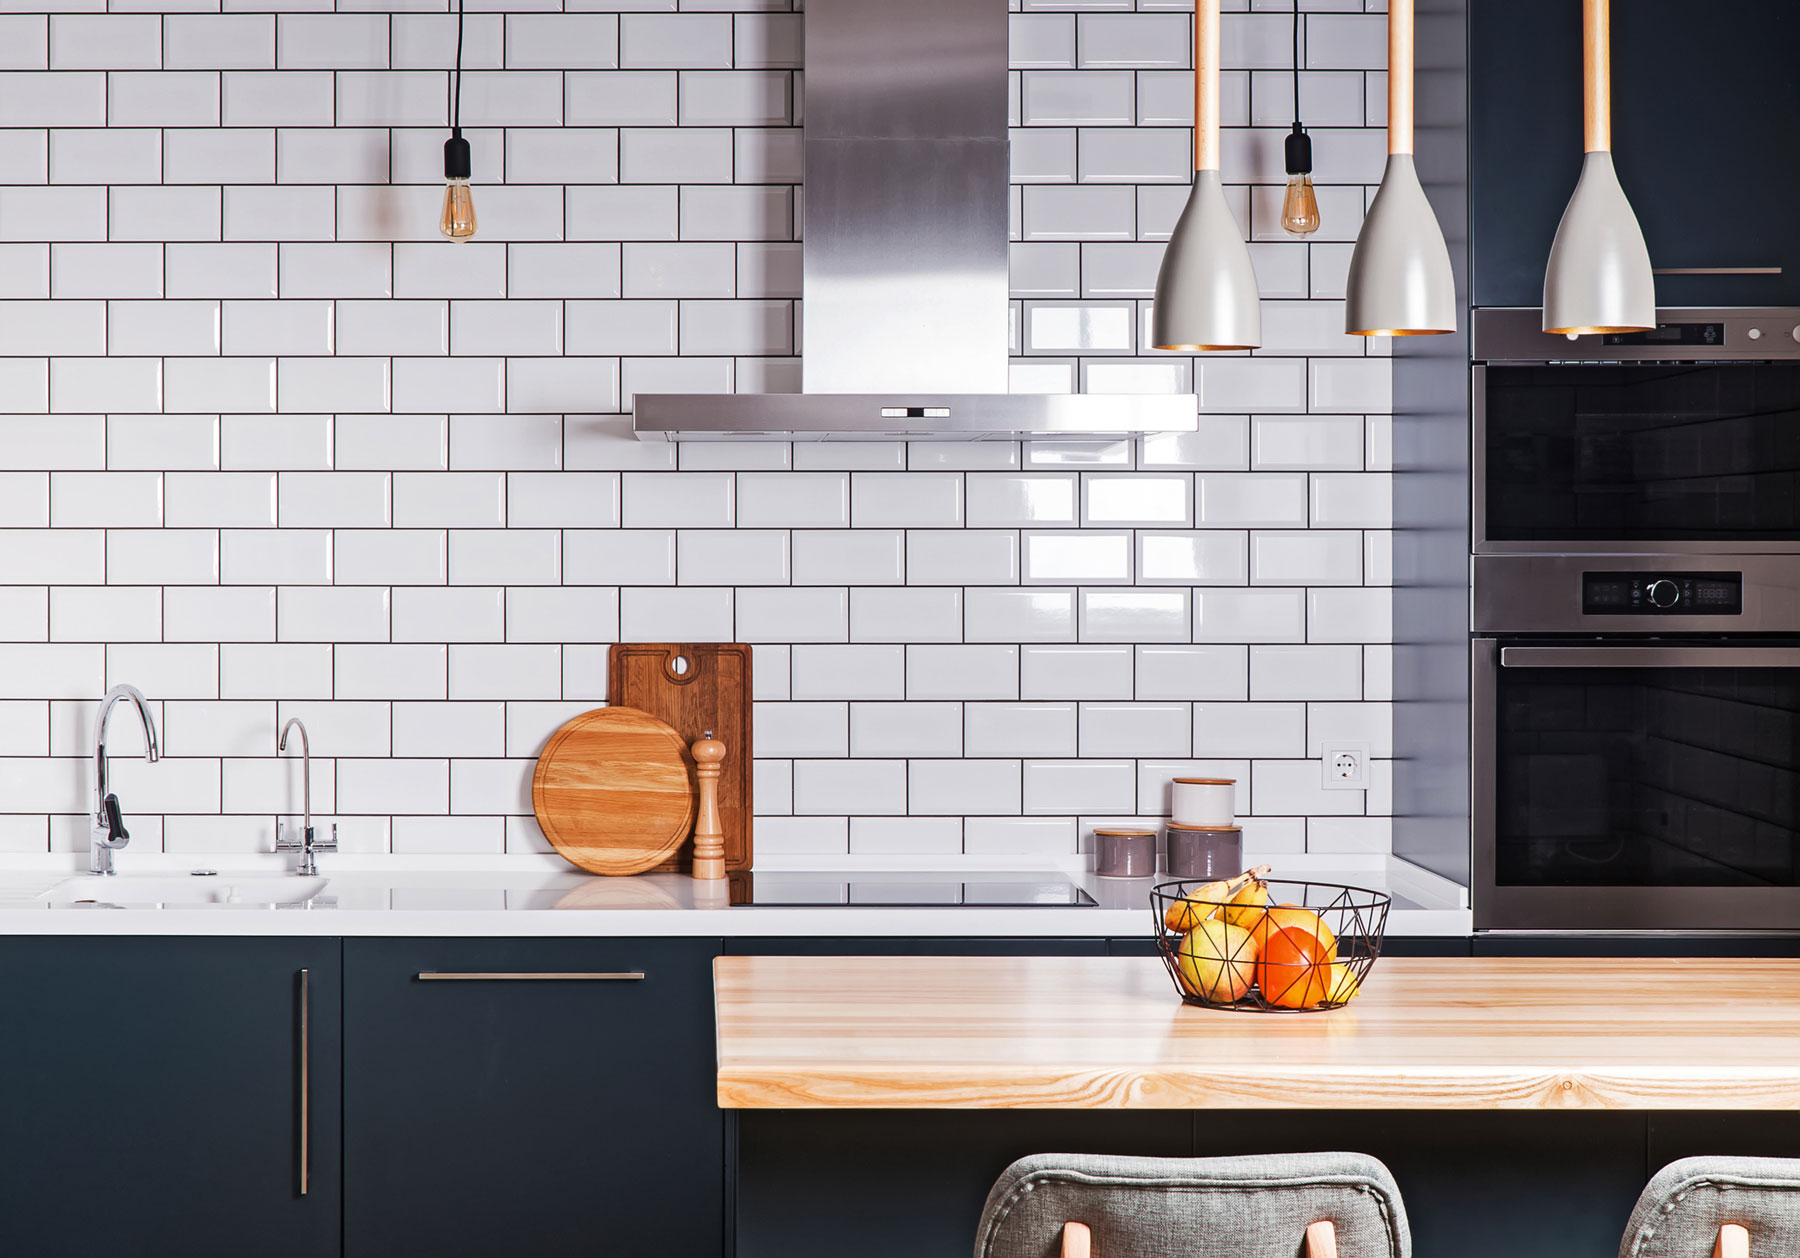 Backsplash Tile Ideas Collection Real Simple